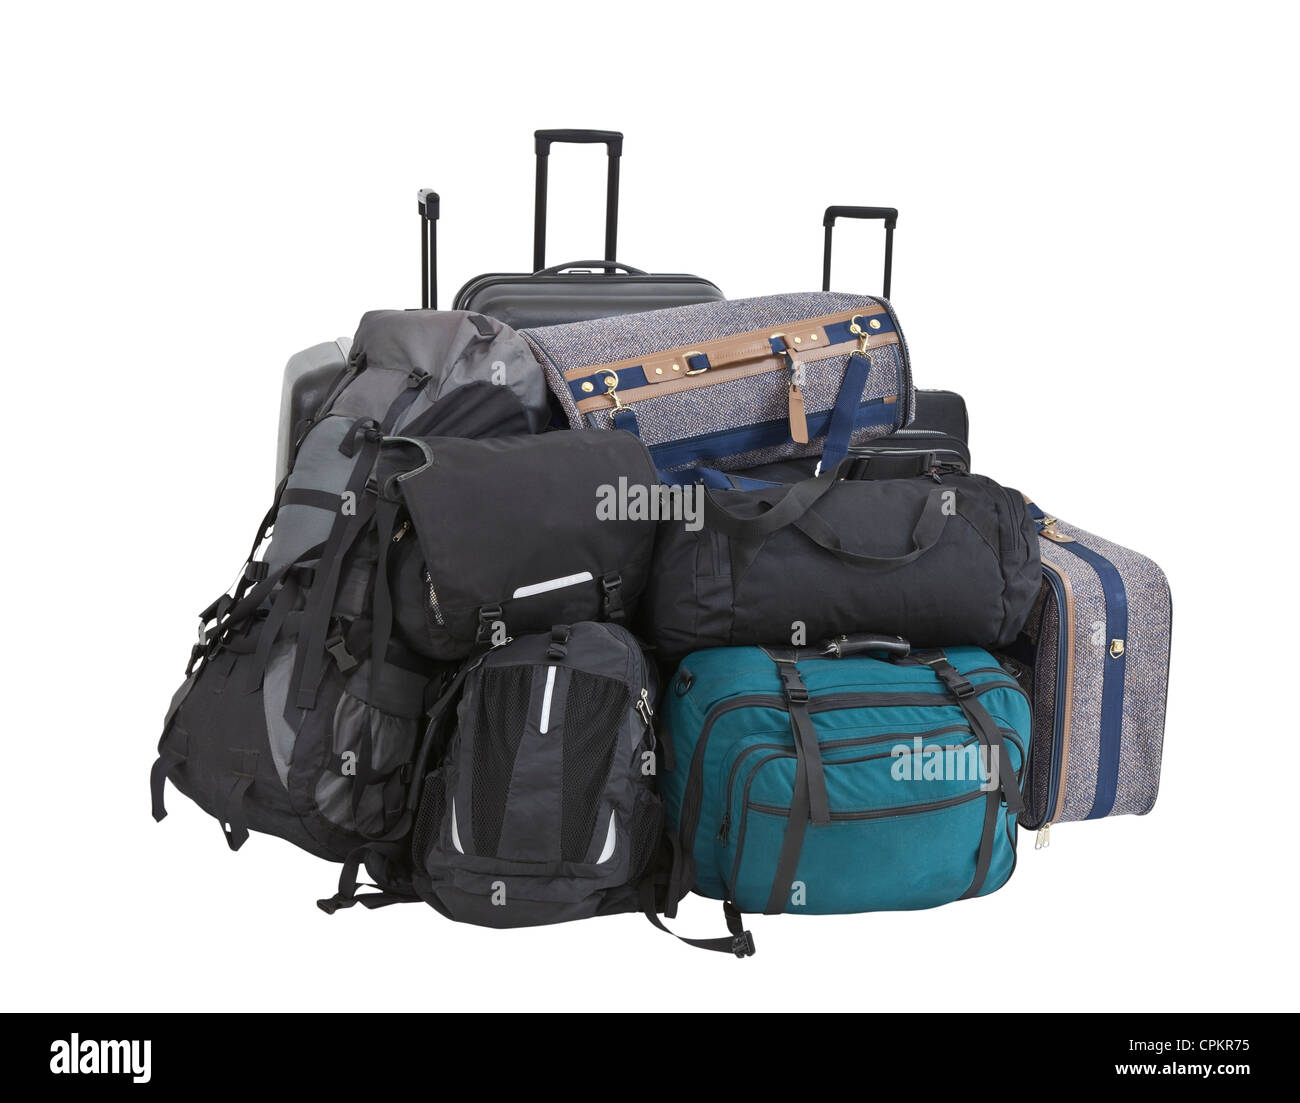 Large pile of suitcases, luggage, bags and backpacks isolated. - Stock Image